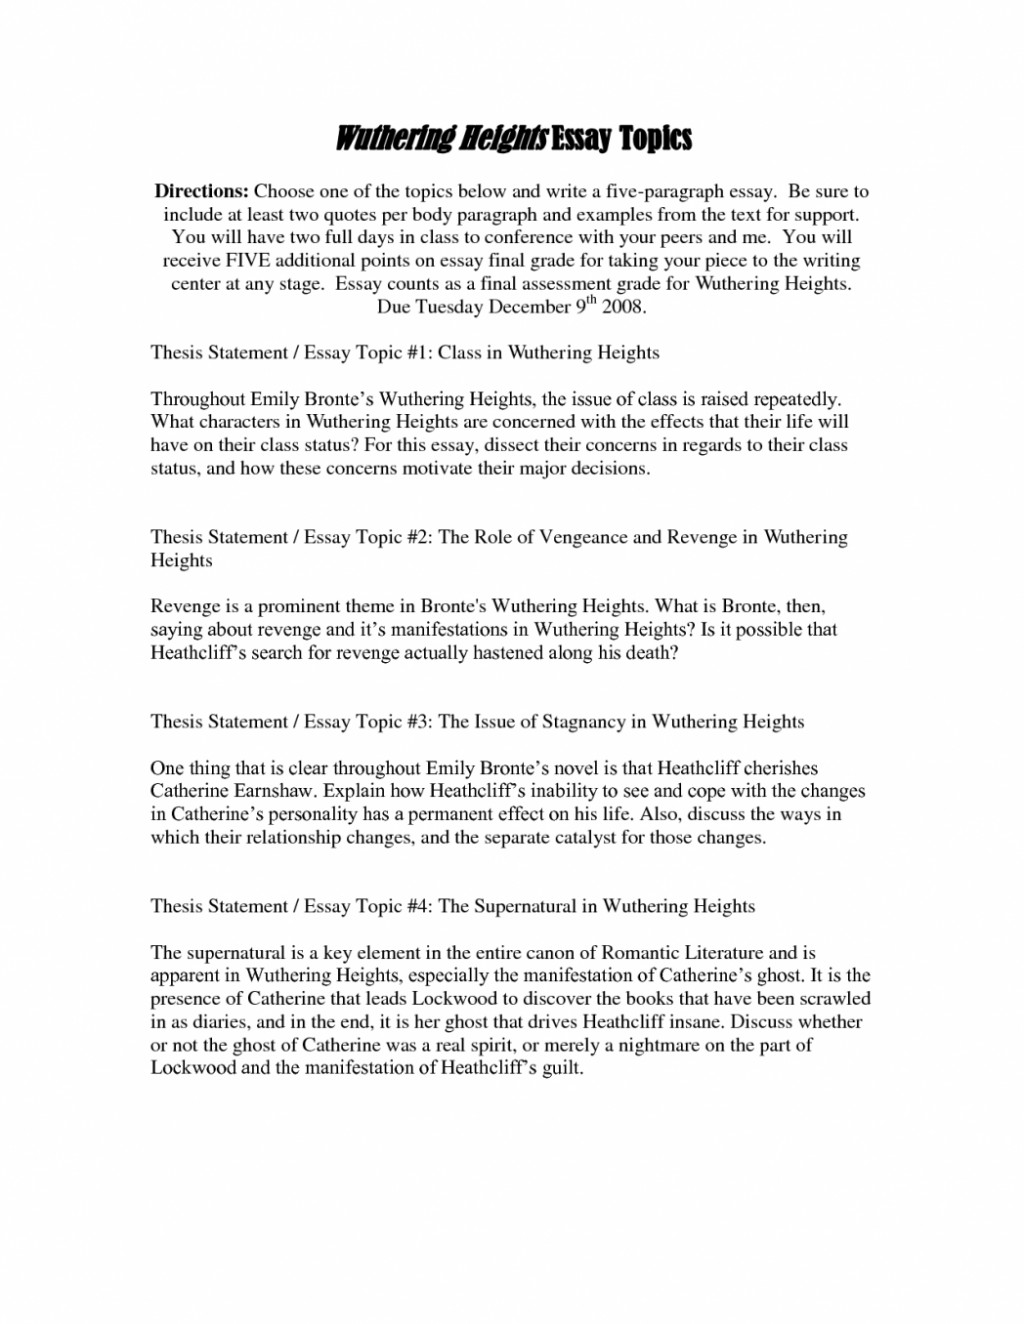 007 Define Thesis Statement In An Essay Wikipedia Step Six From To Writing 8au18 Dbq 1048x1356 Stirring Descriptive Examples Definition Structure Large